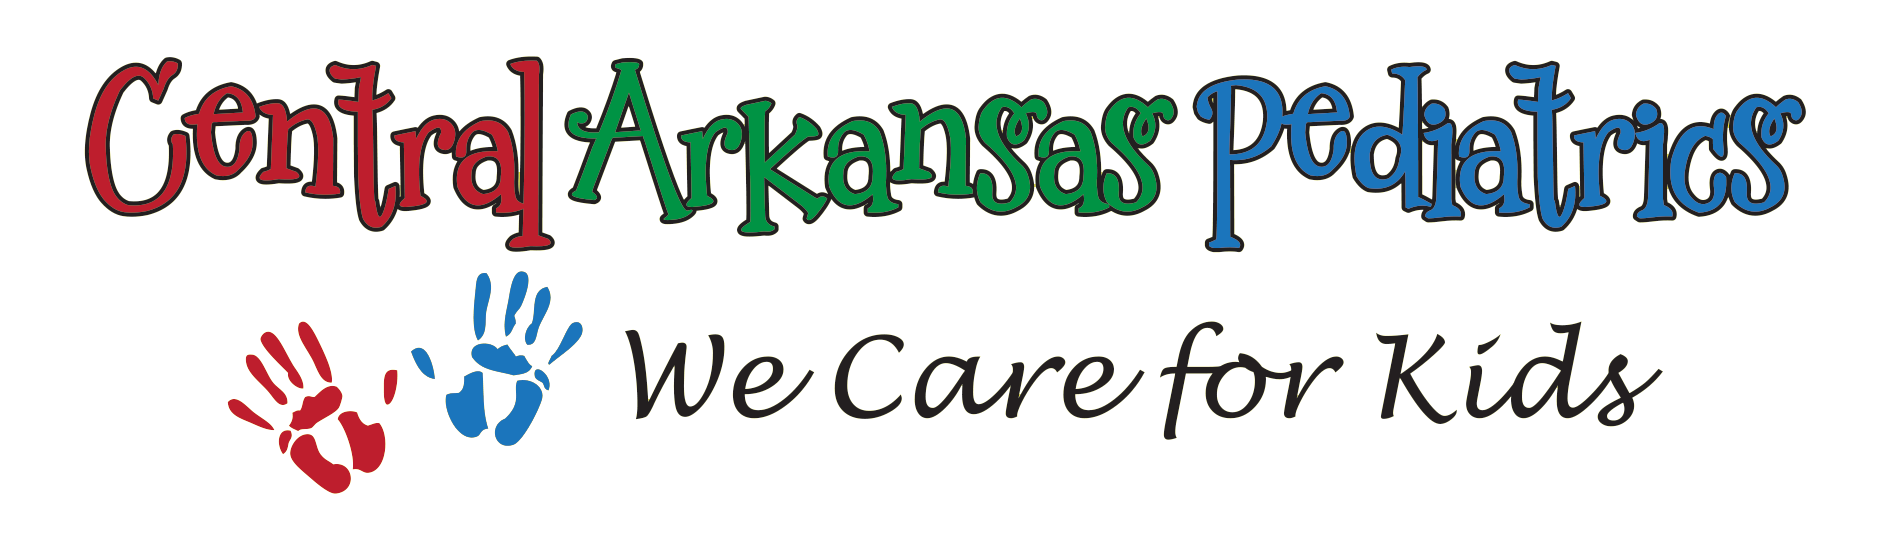 Central-Arkansas-Pediatrics-Logo-VECTOR.png